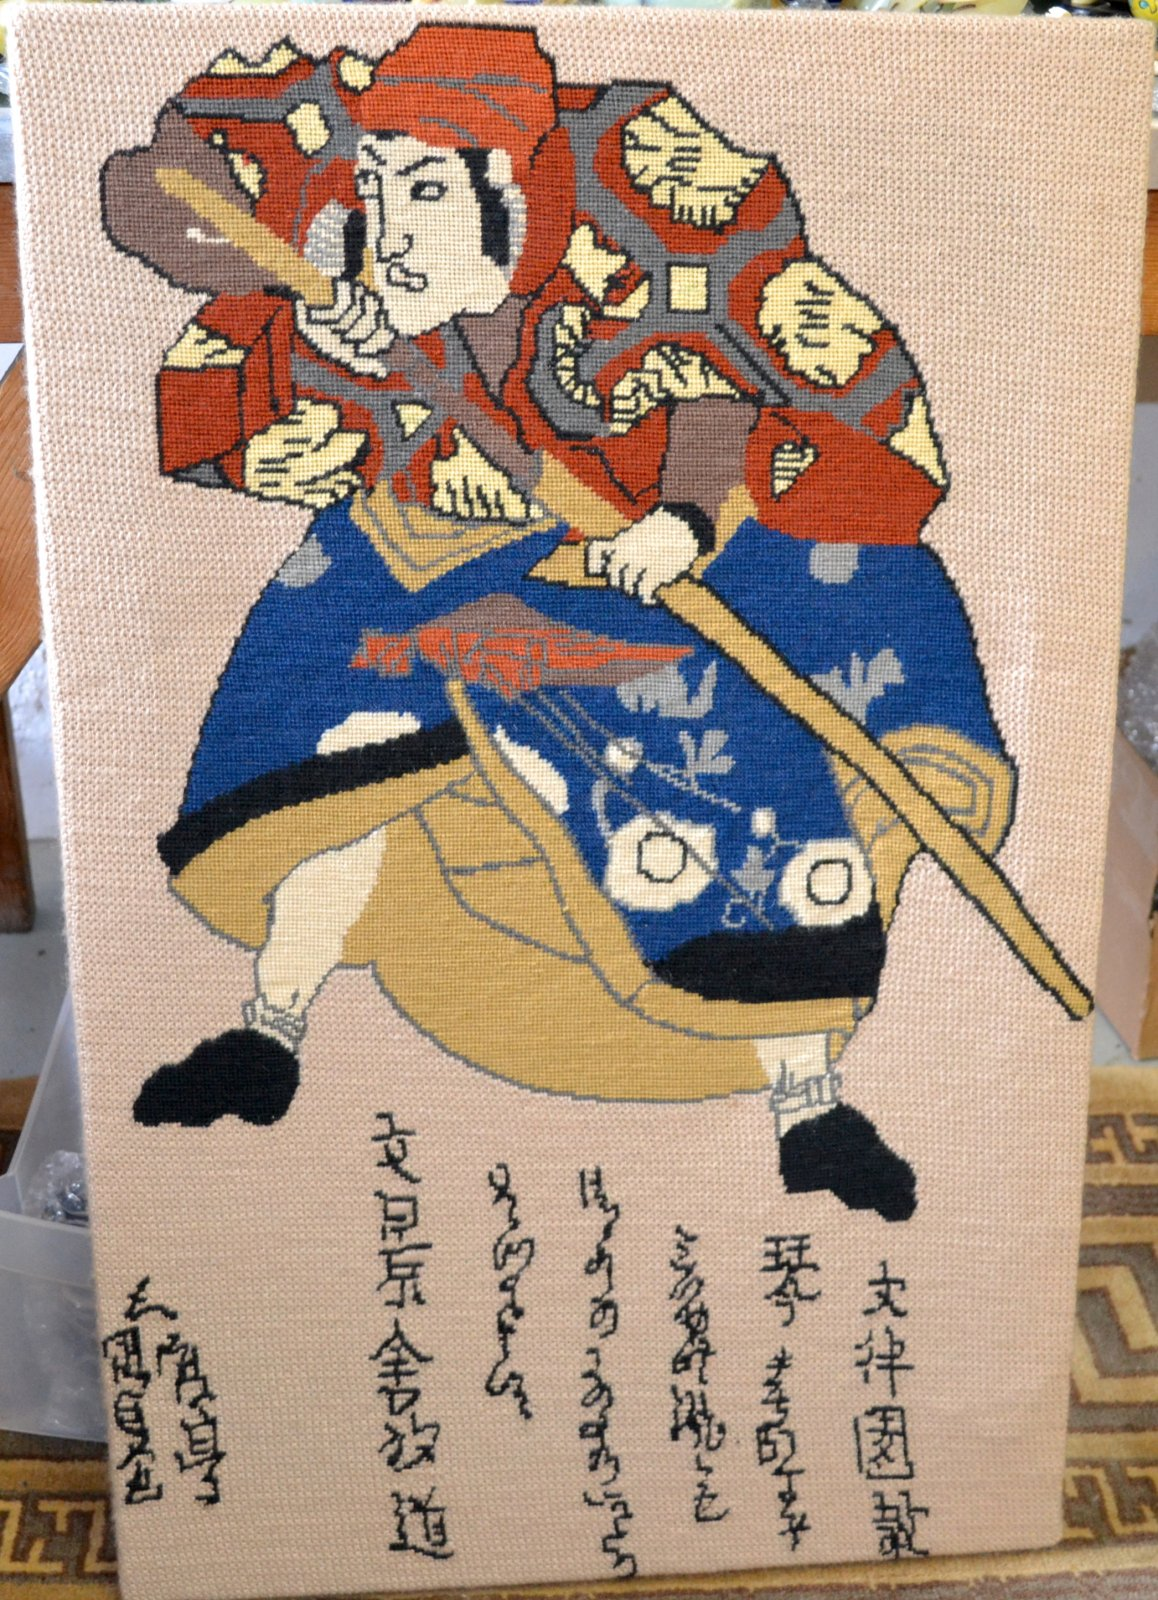 Japanese needle point of a Samurai with blue and orange outfit